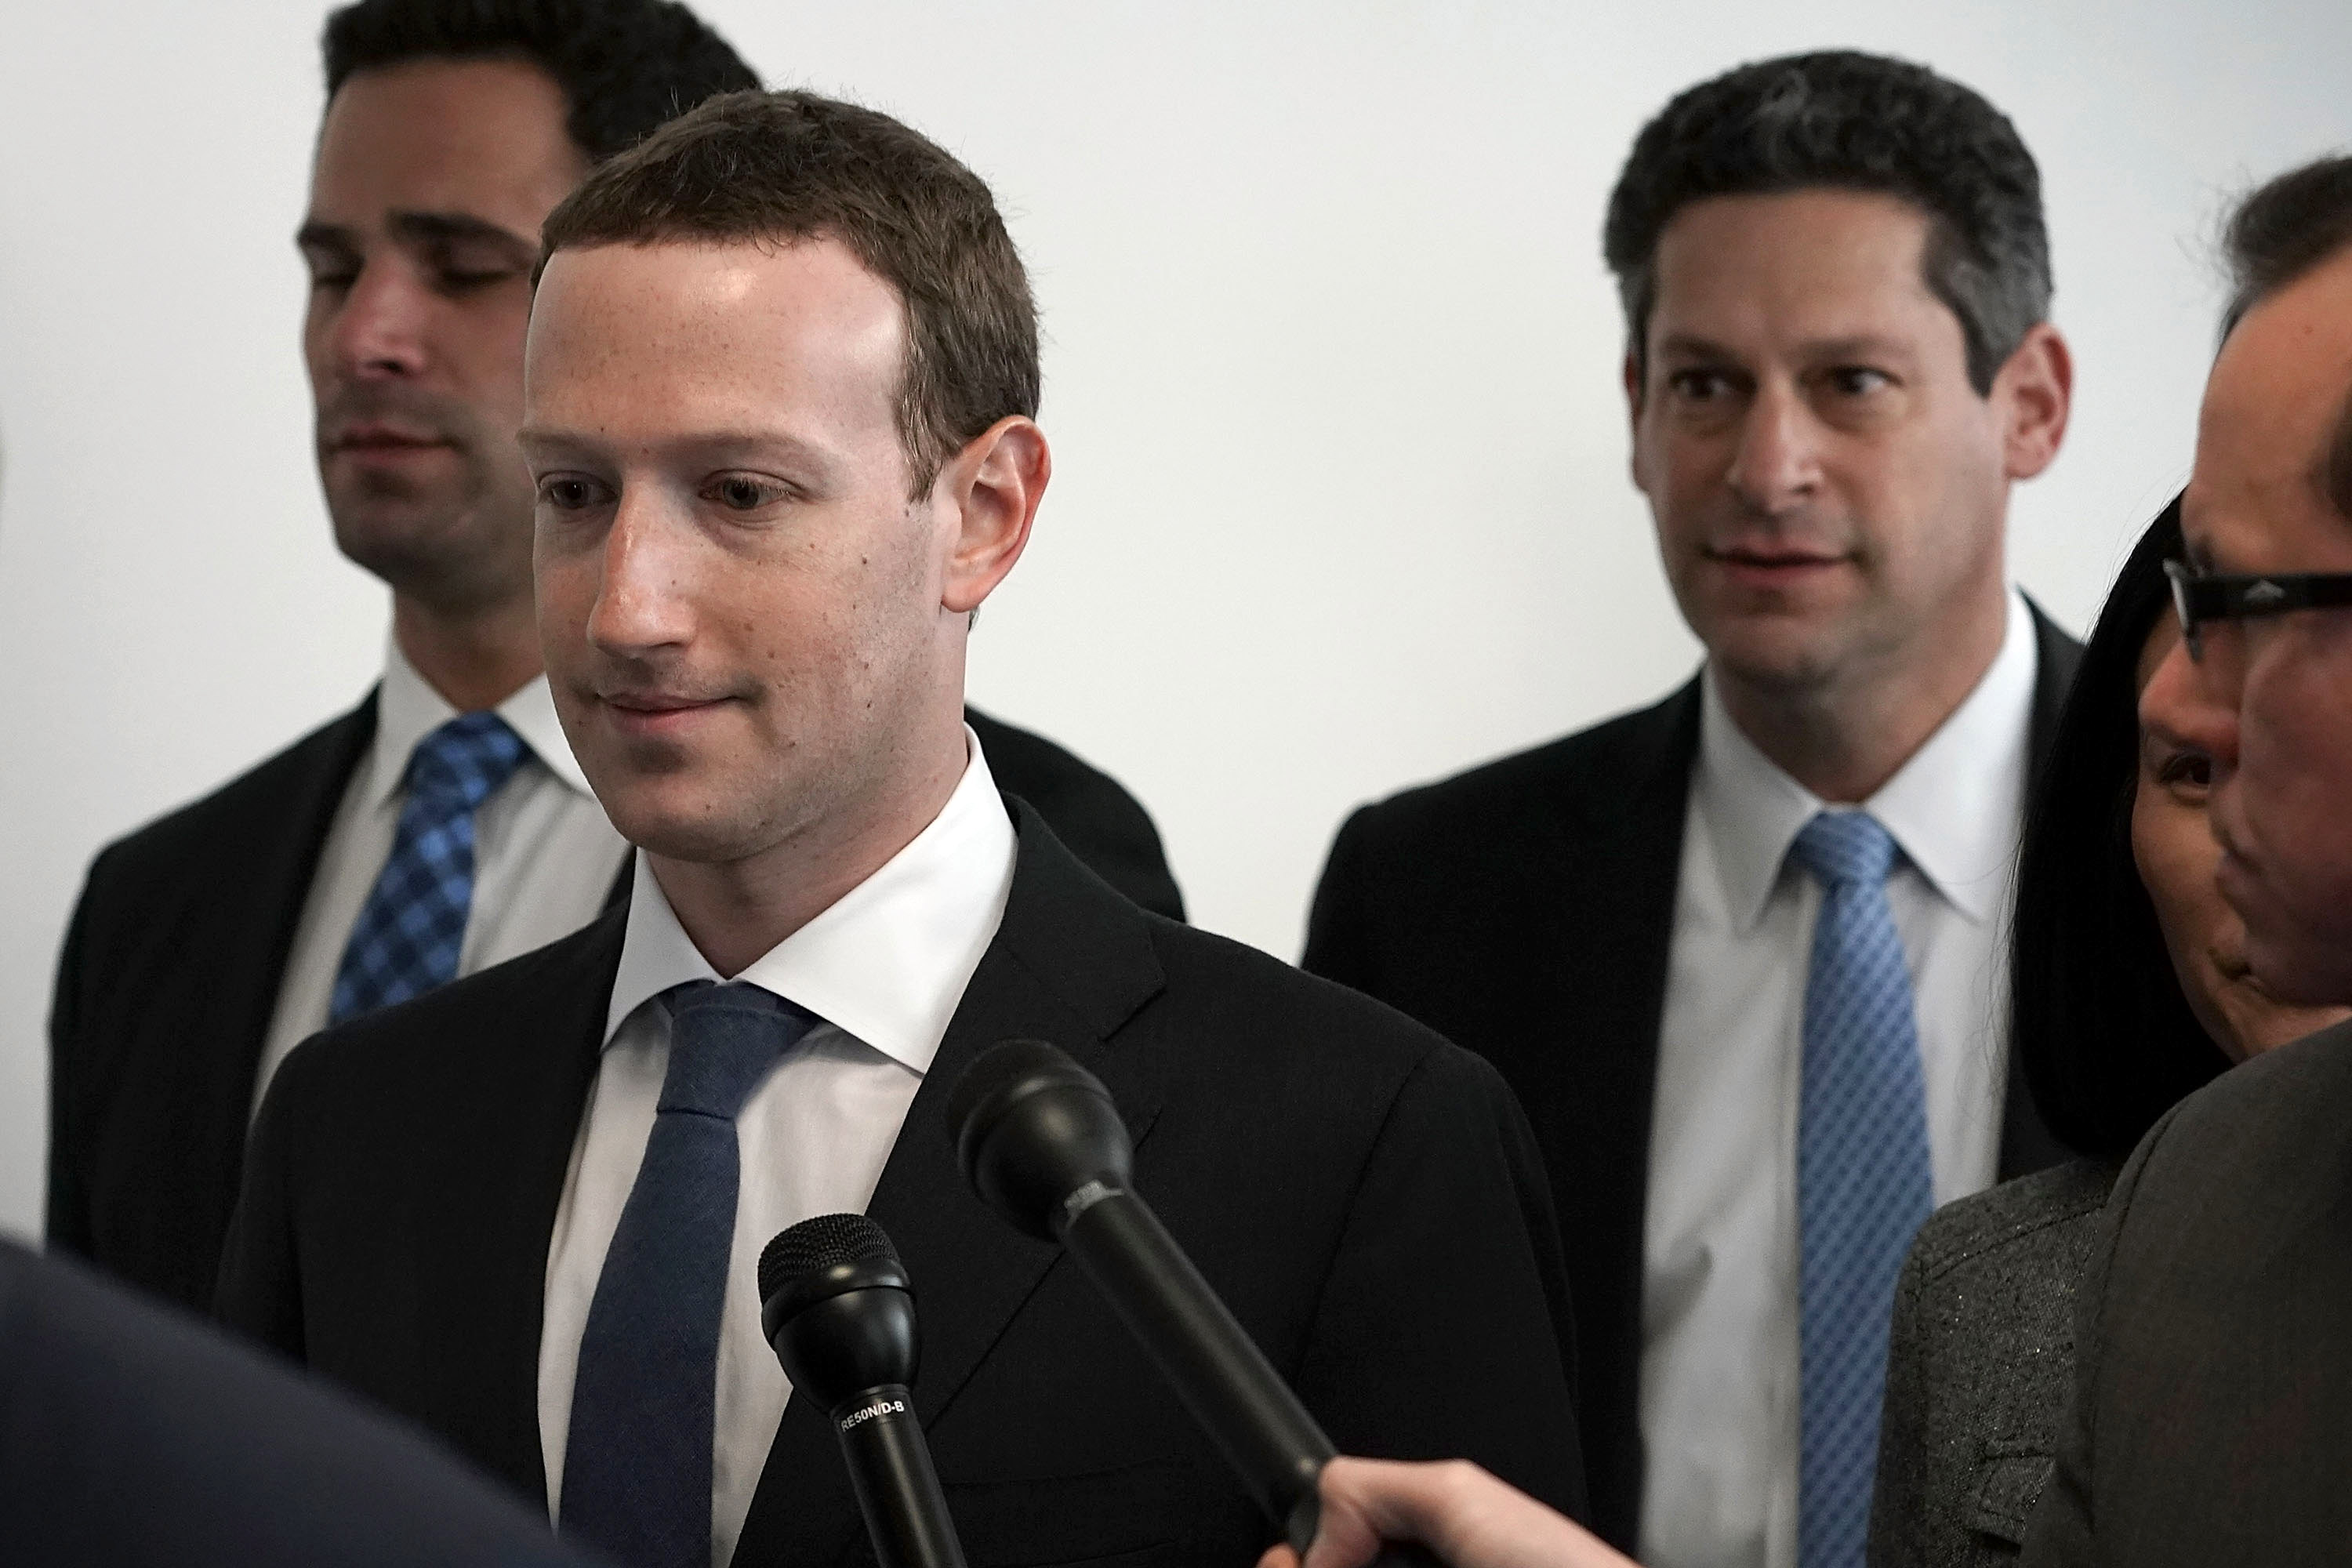 WASHINGTON, DC - APRIL 09:  Facebook CEO Mark Zuckerberg (2nd L) arrives at a meeting with U.S. Sen. Bill Nelson (D-FL), ranking member of the Senate Committee on Commerce, Science, and Transportation, April 9, 2018 on Capitol Hill in Washington, DC. Zuckerberg is scheduled to testify before a few Congressional committees this week on the mass usersÕ data Facebook has shared with political operatives.  (Photo by Alex Wong/Getty Images)